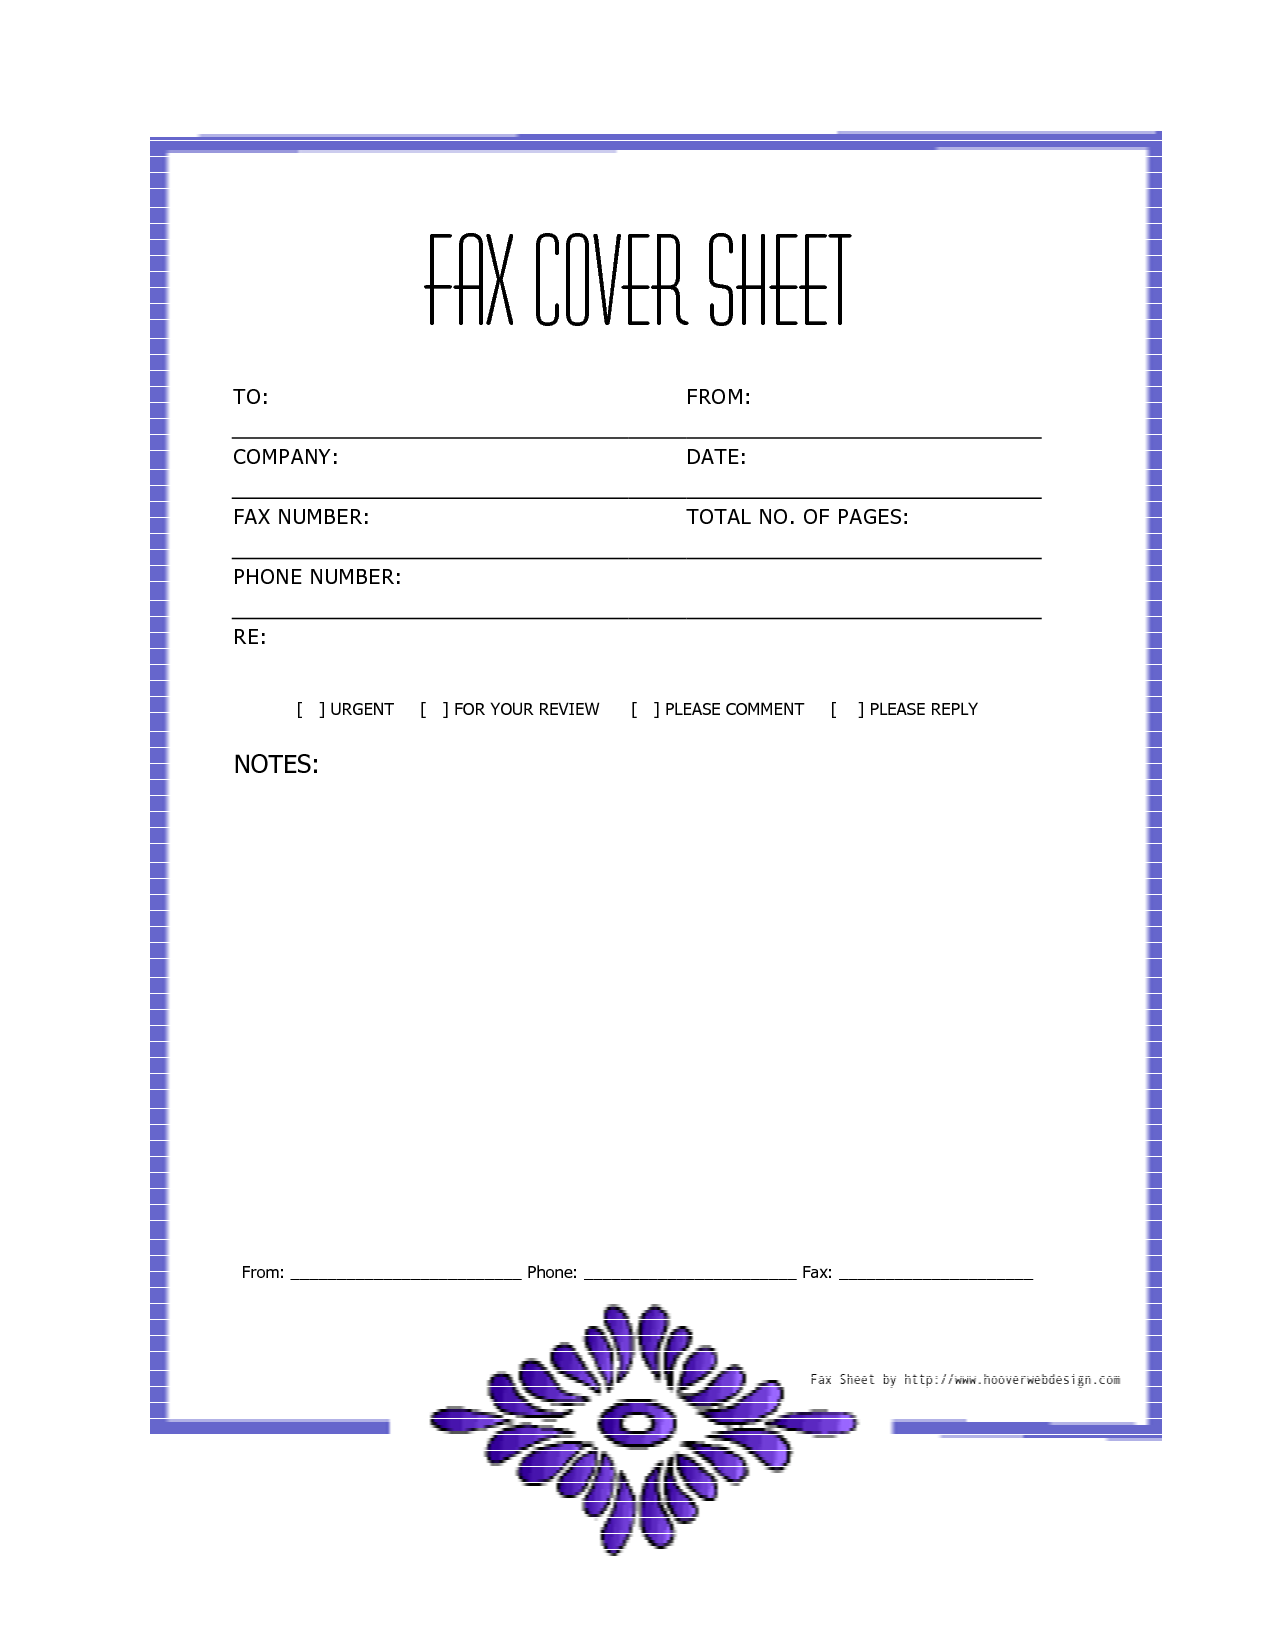 Blank Fax Cover Page | Free Fax Cover Sheet Template   Printable Fax Cover  Sheet | Mylfgod100 | Pinterest | Cover Sheet Template, Template And Pdf  Fax Cover Page Templates